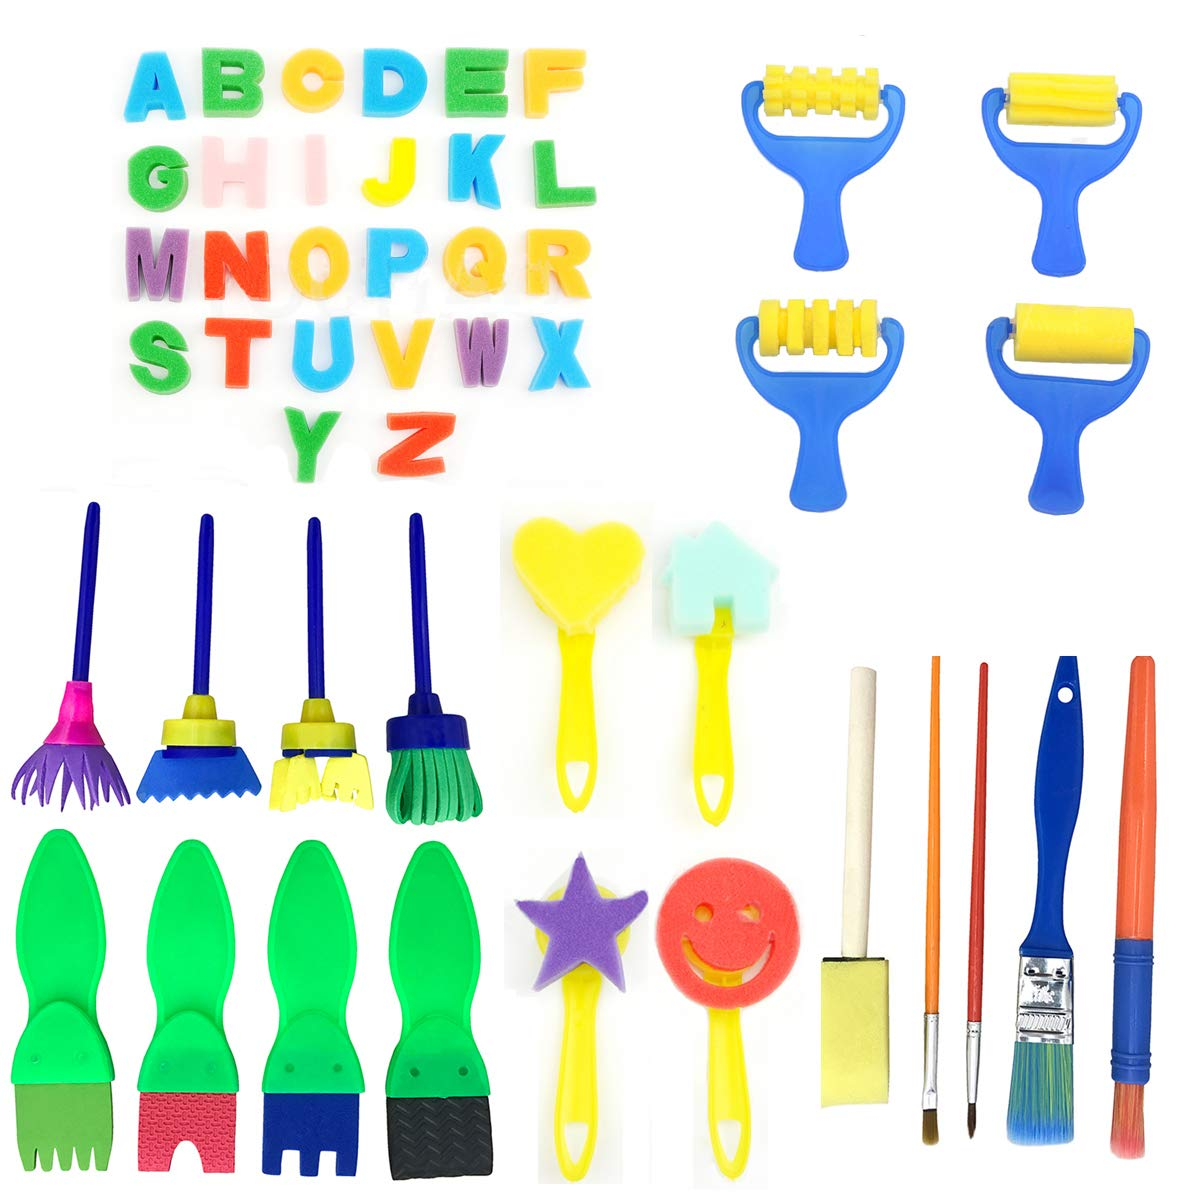 47 Pieces Sponge Painting Brushes Kit PERTTY Kids Art & Craft Kids Painting Kits